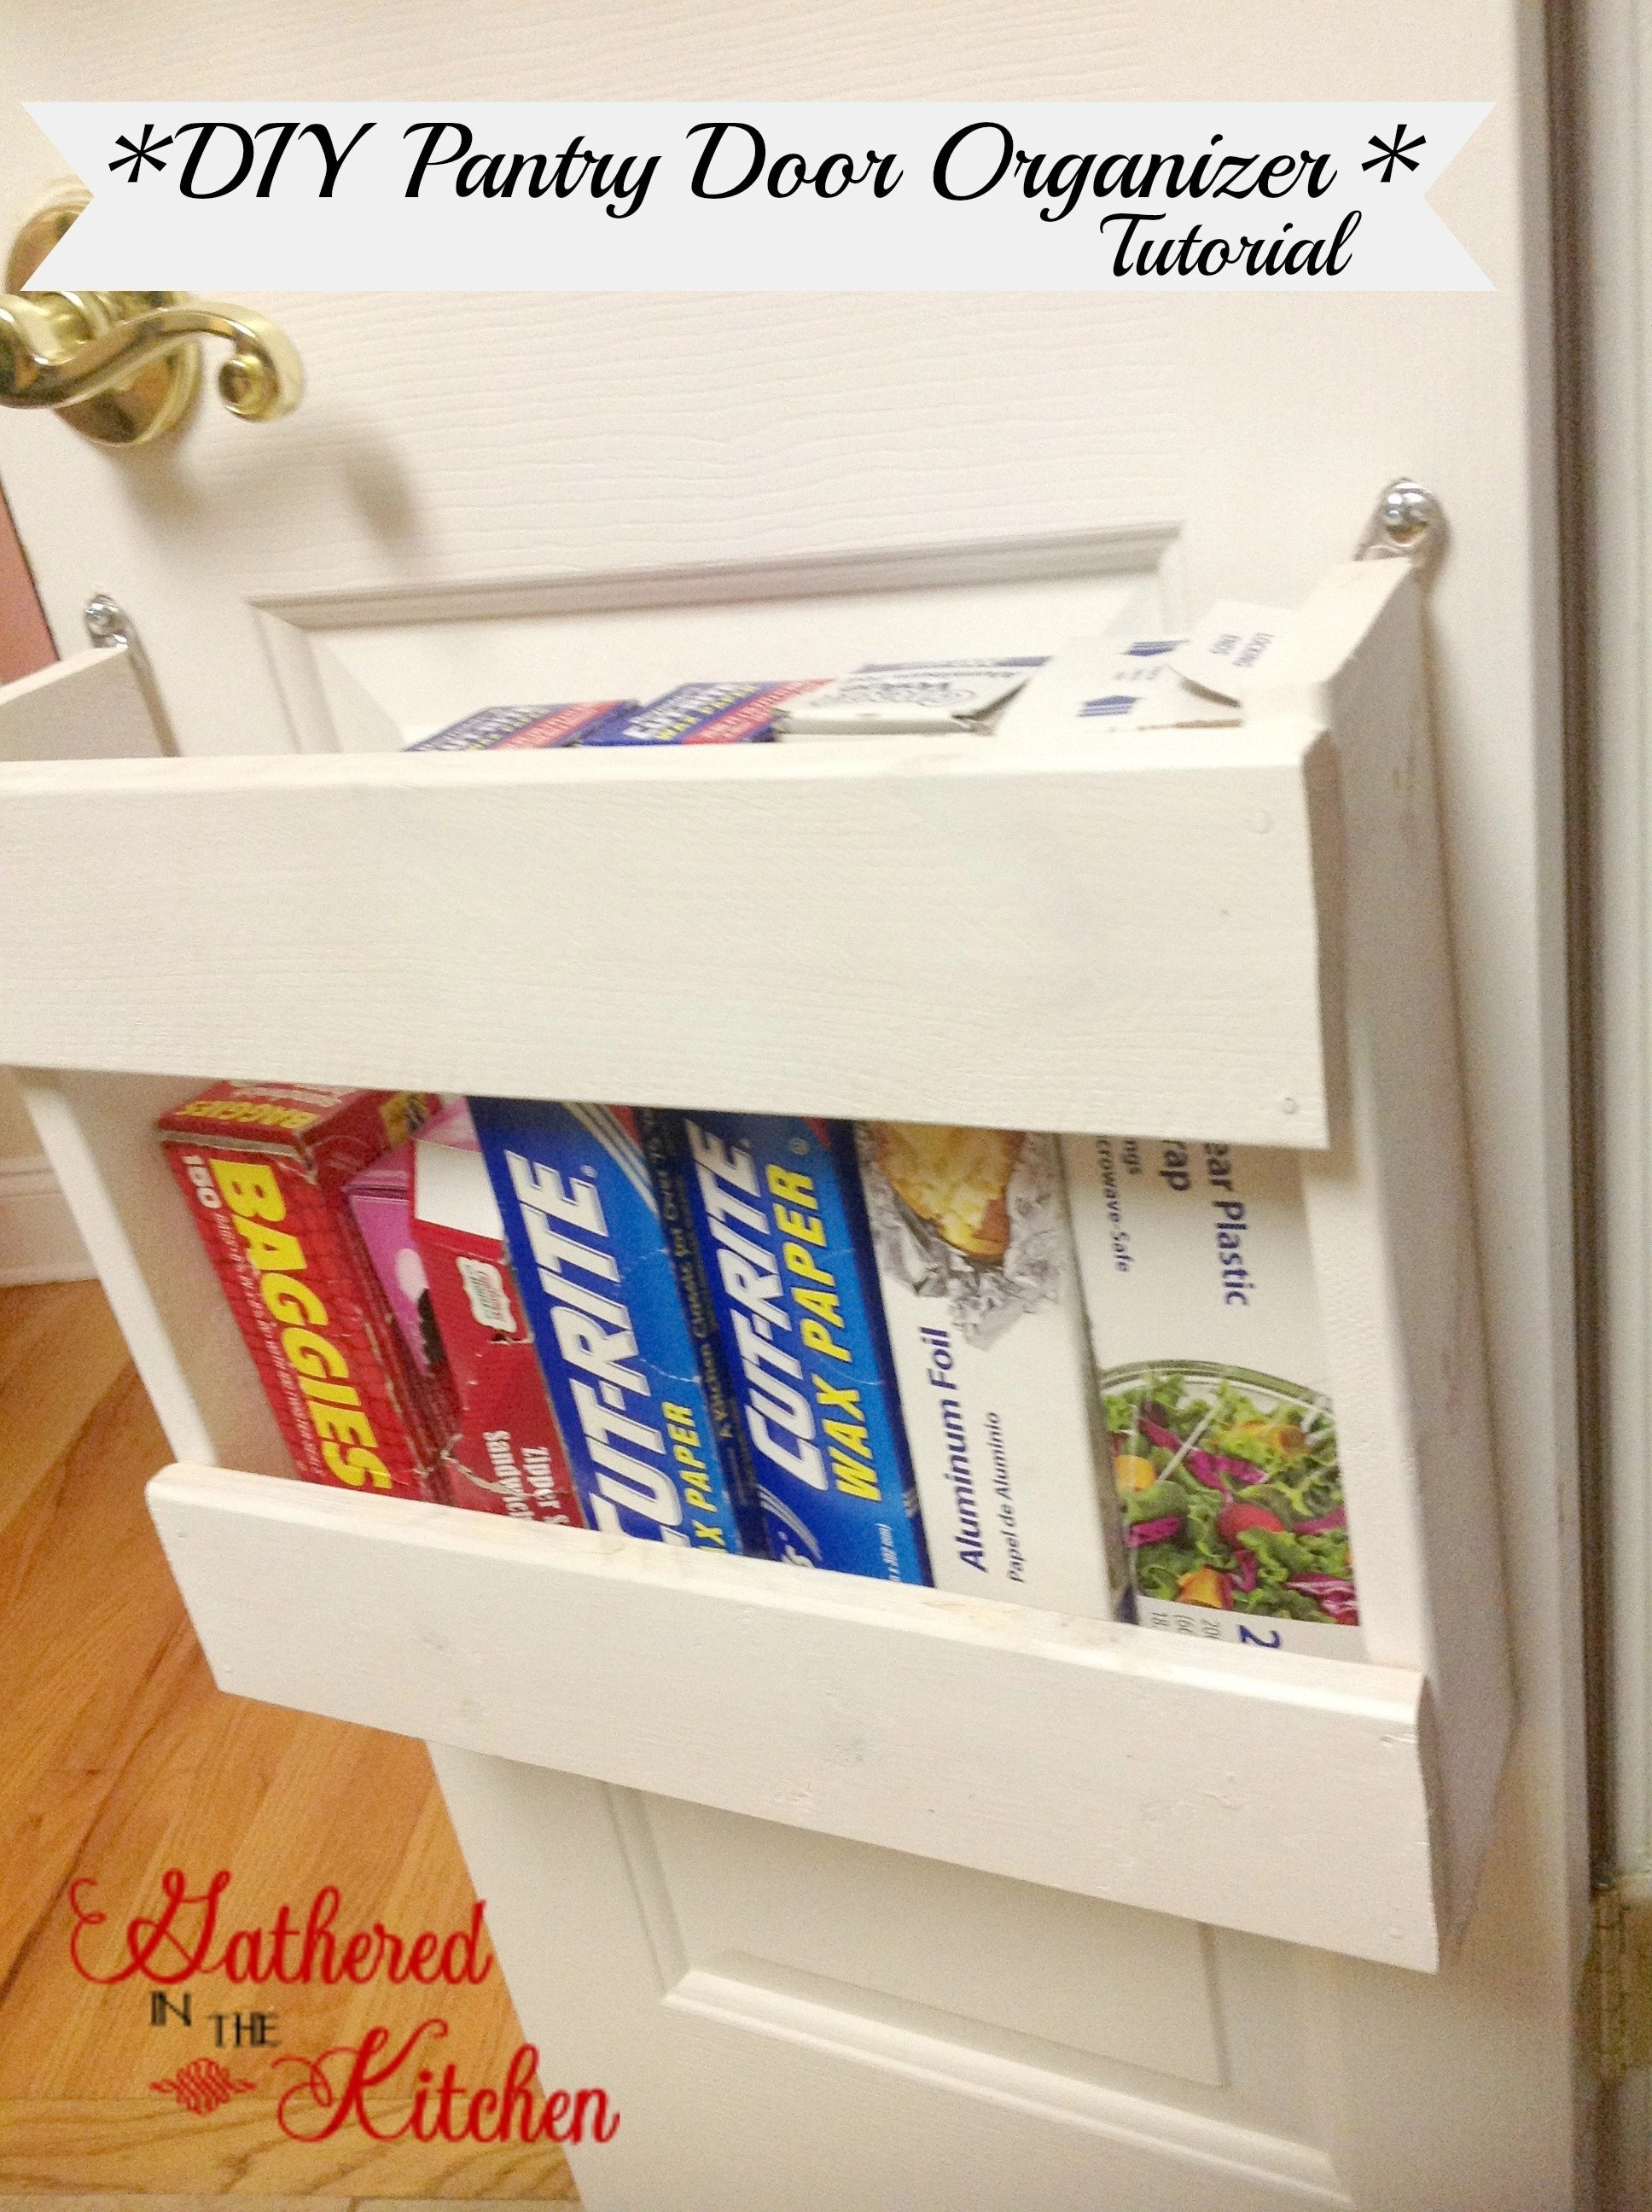 Lowes Pantry Door Pantry Organizer - Diy Foil & More Organizer